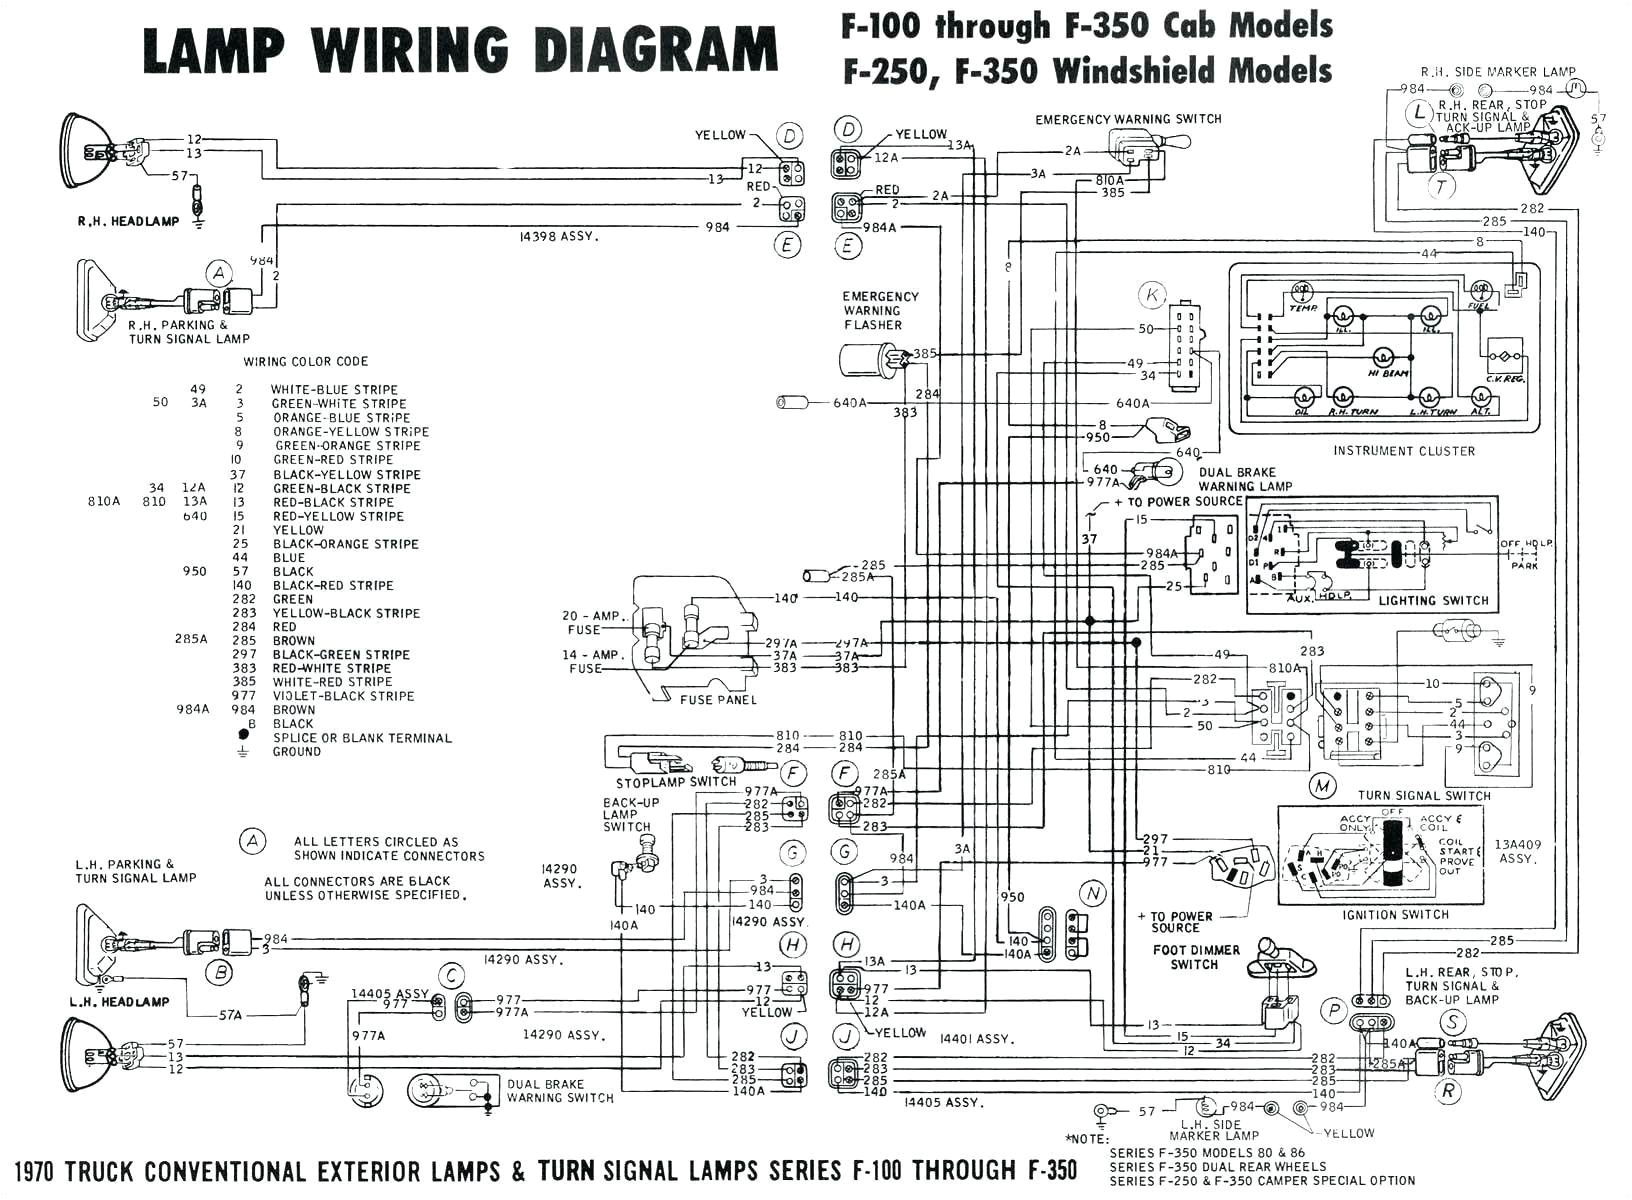 Williams Wall Furnace Wiring Diagram Williams Wall Furnace Wiring Diagram New Williams Wall Furnace